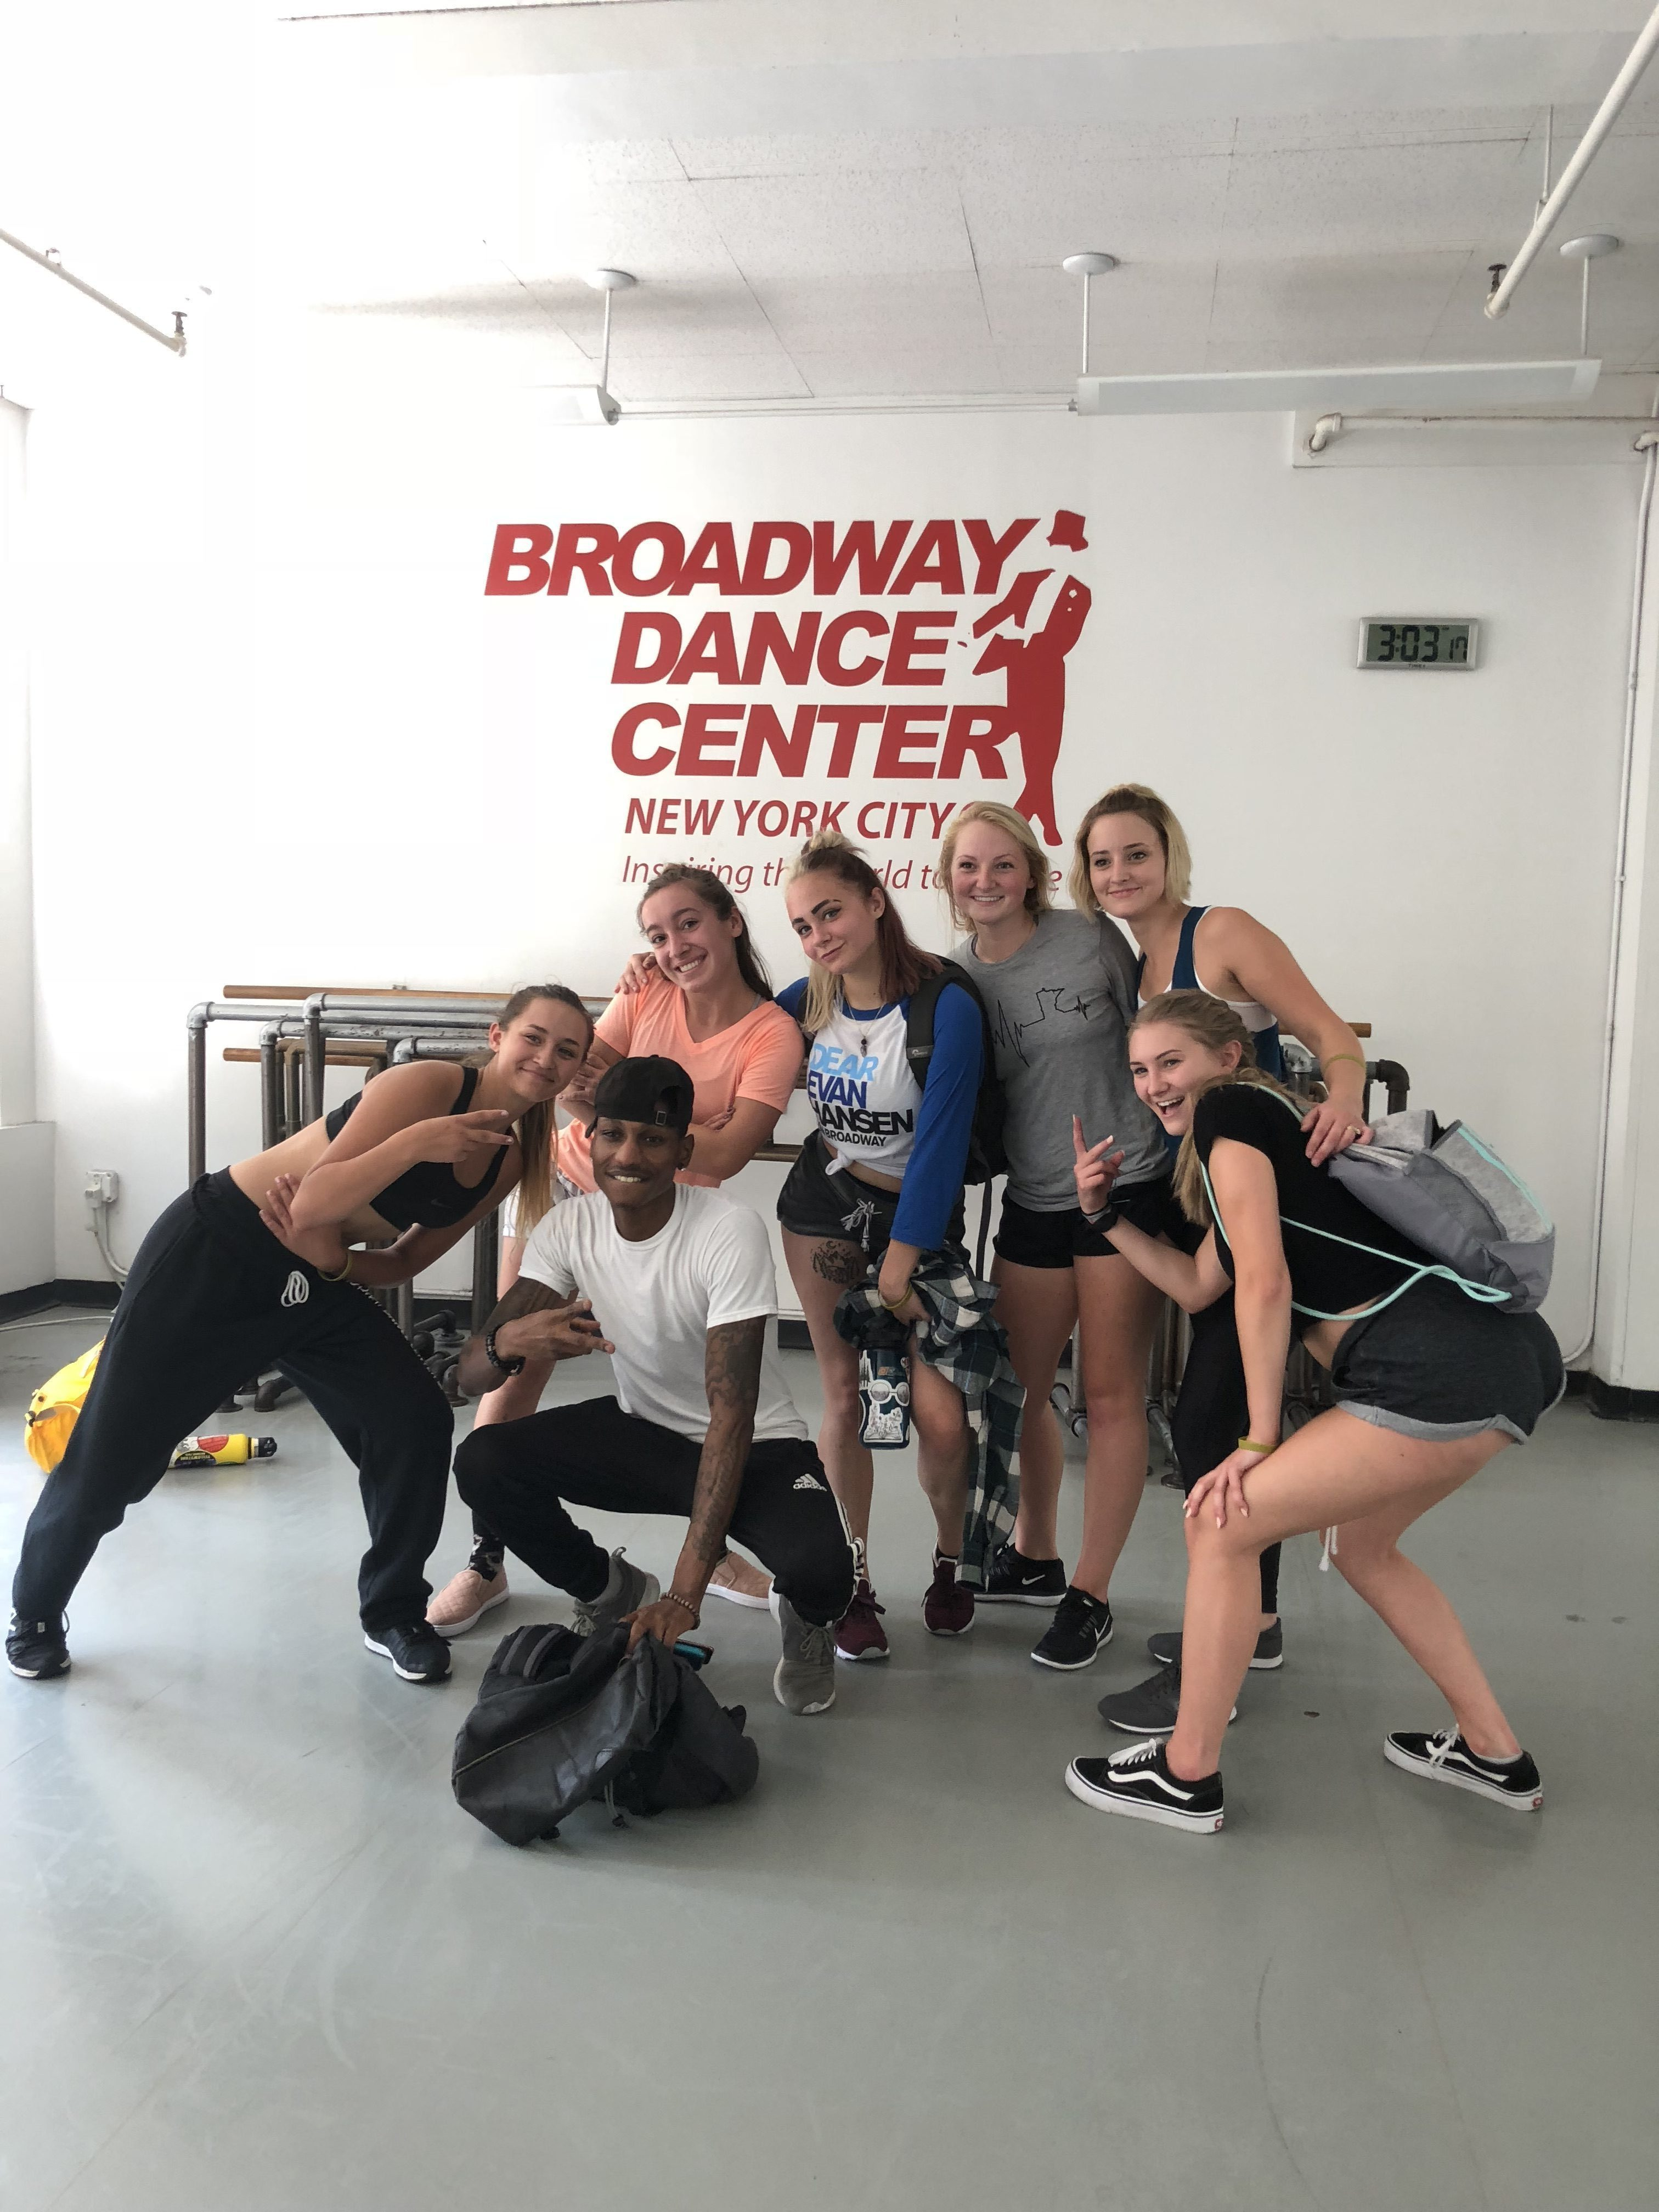 Dance classes with David Thomas @ Broadway Dance Company in New York